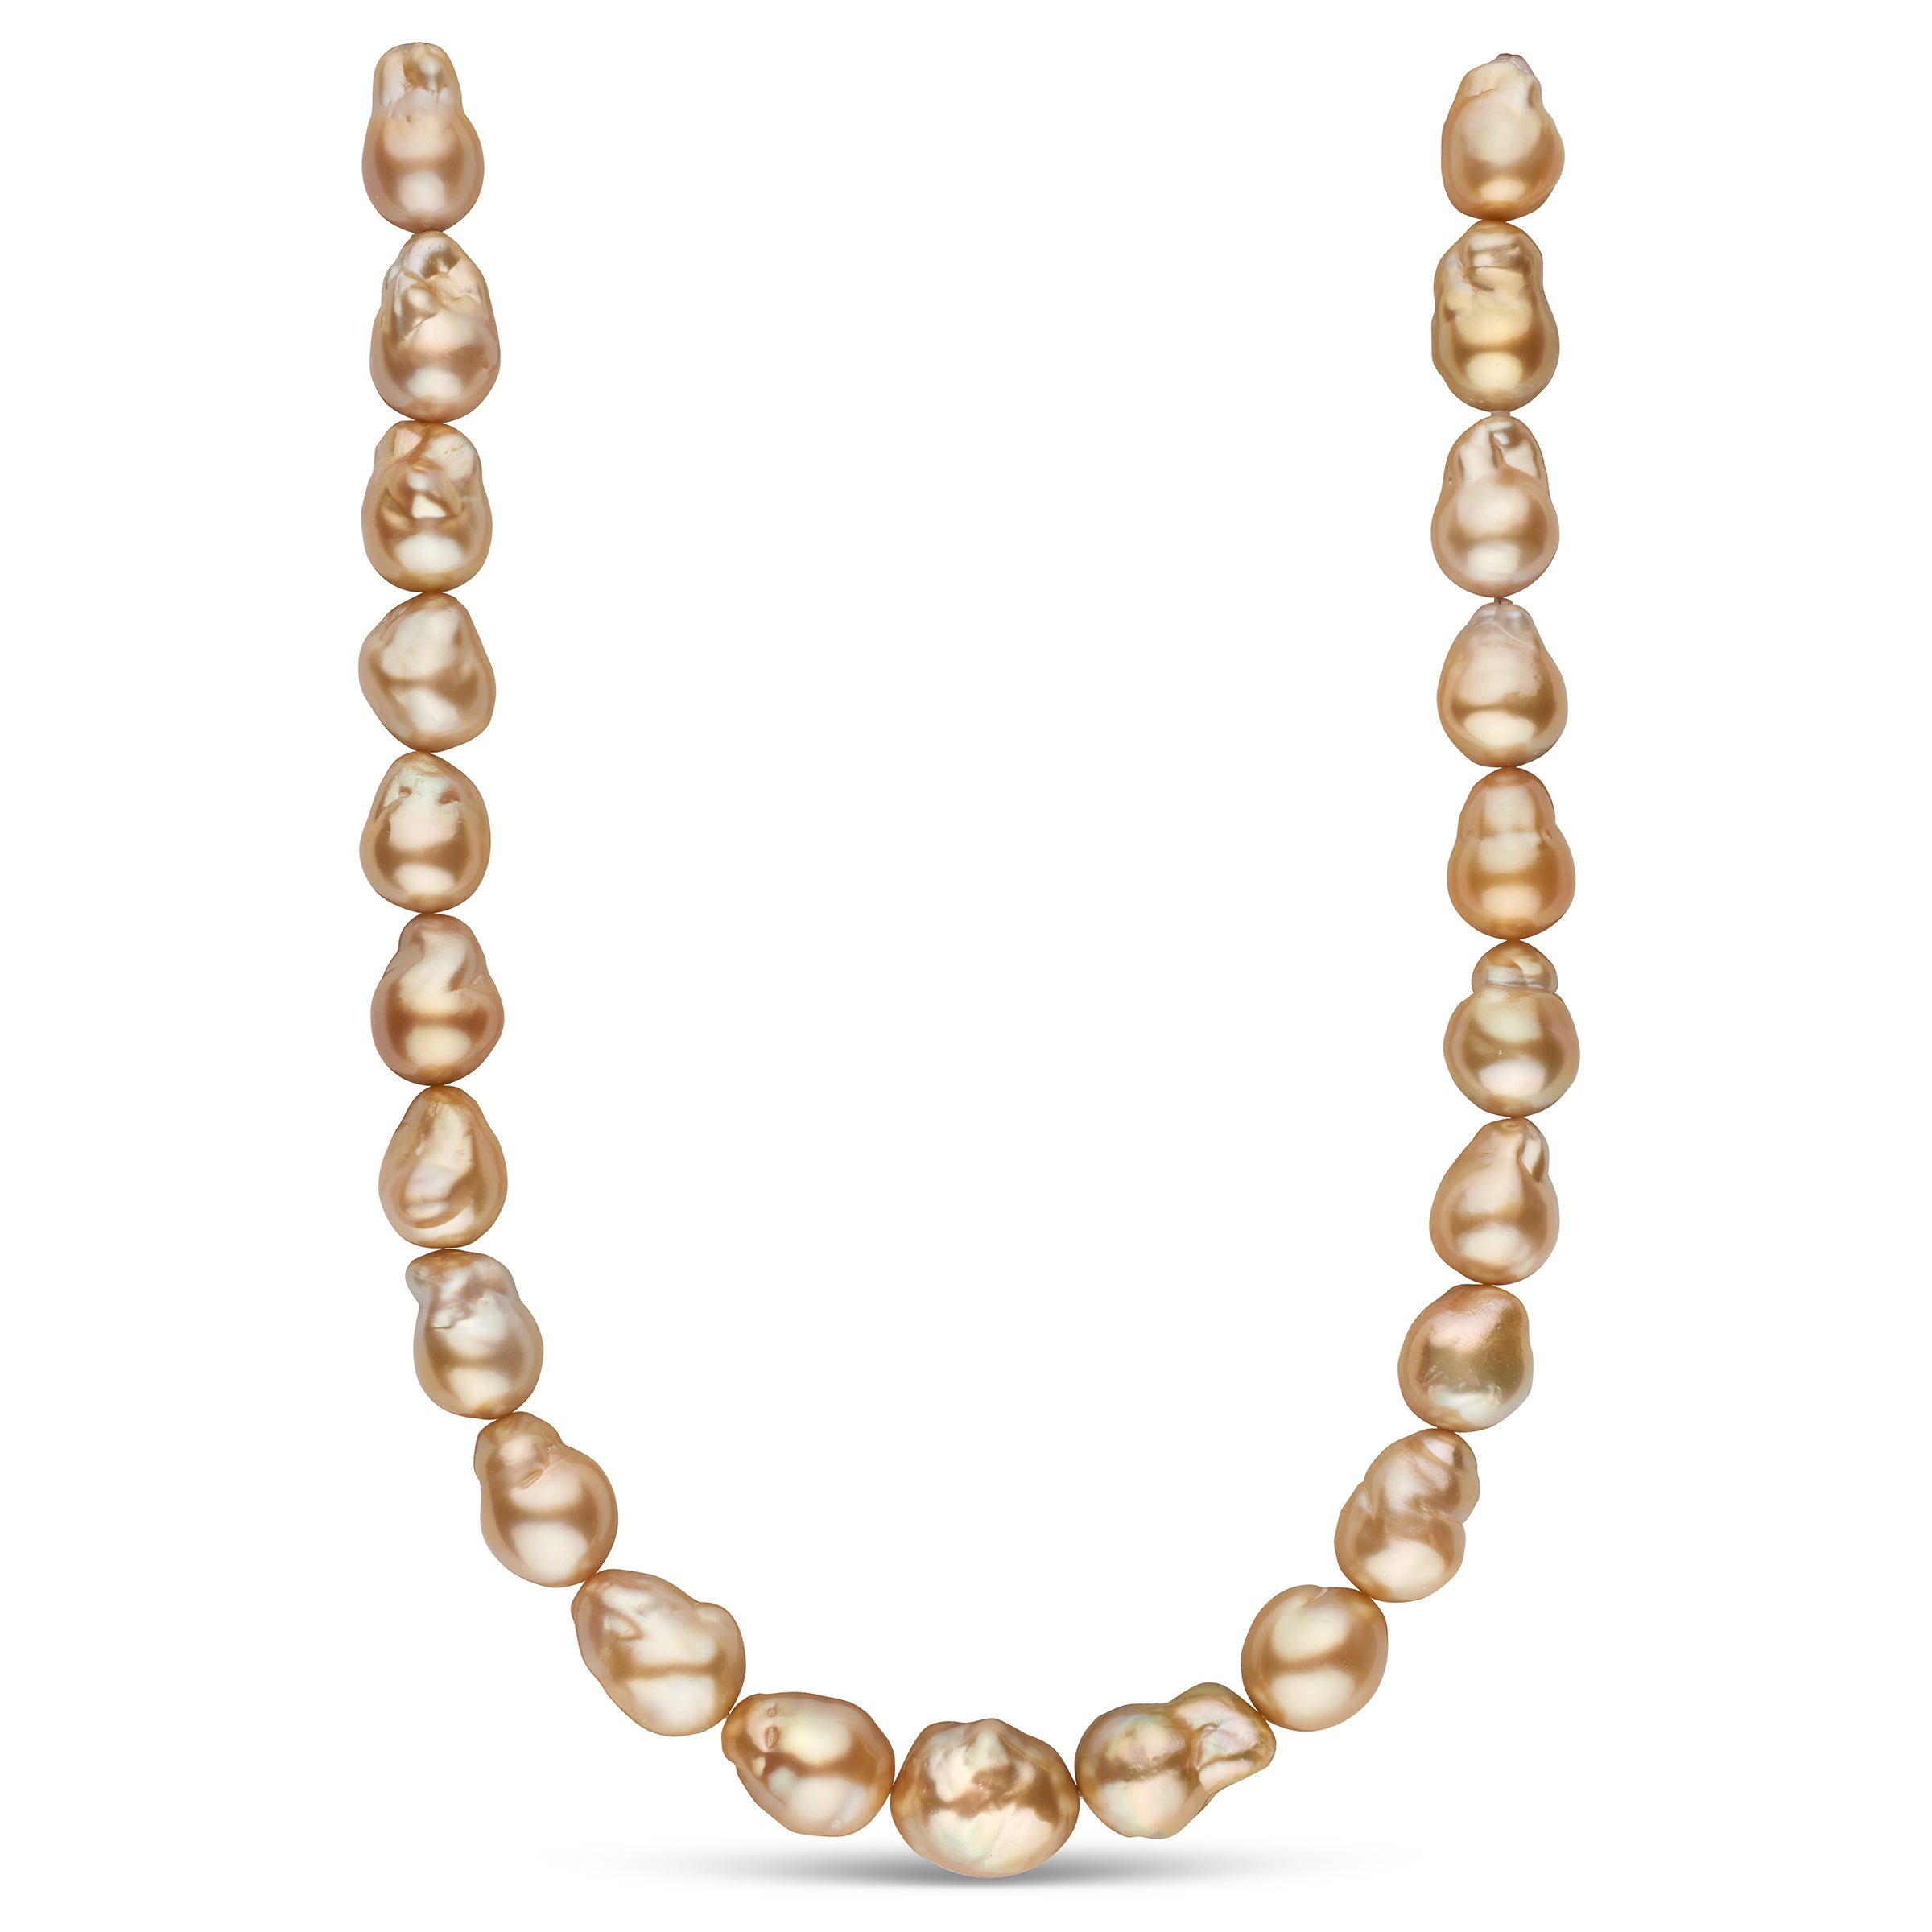 The Sound of Music Golden South Sea Pearl Necklace